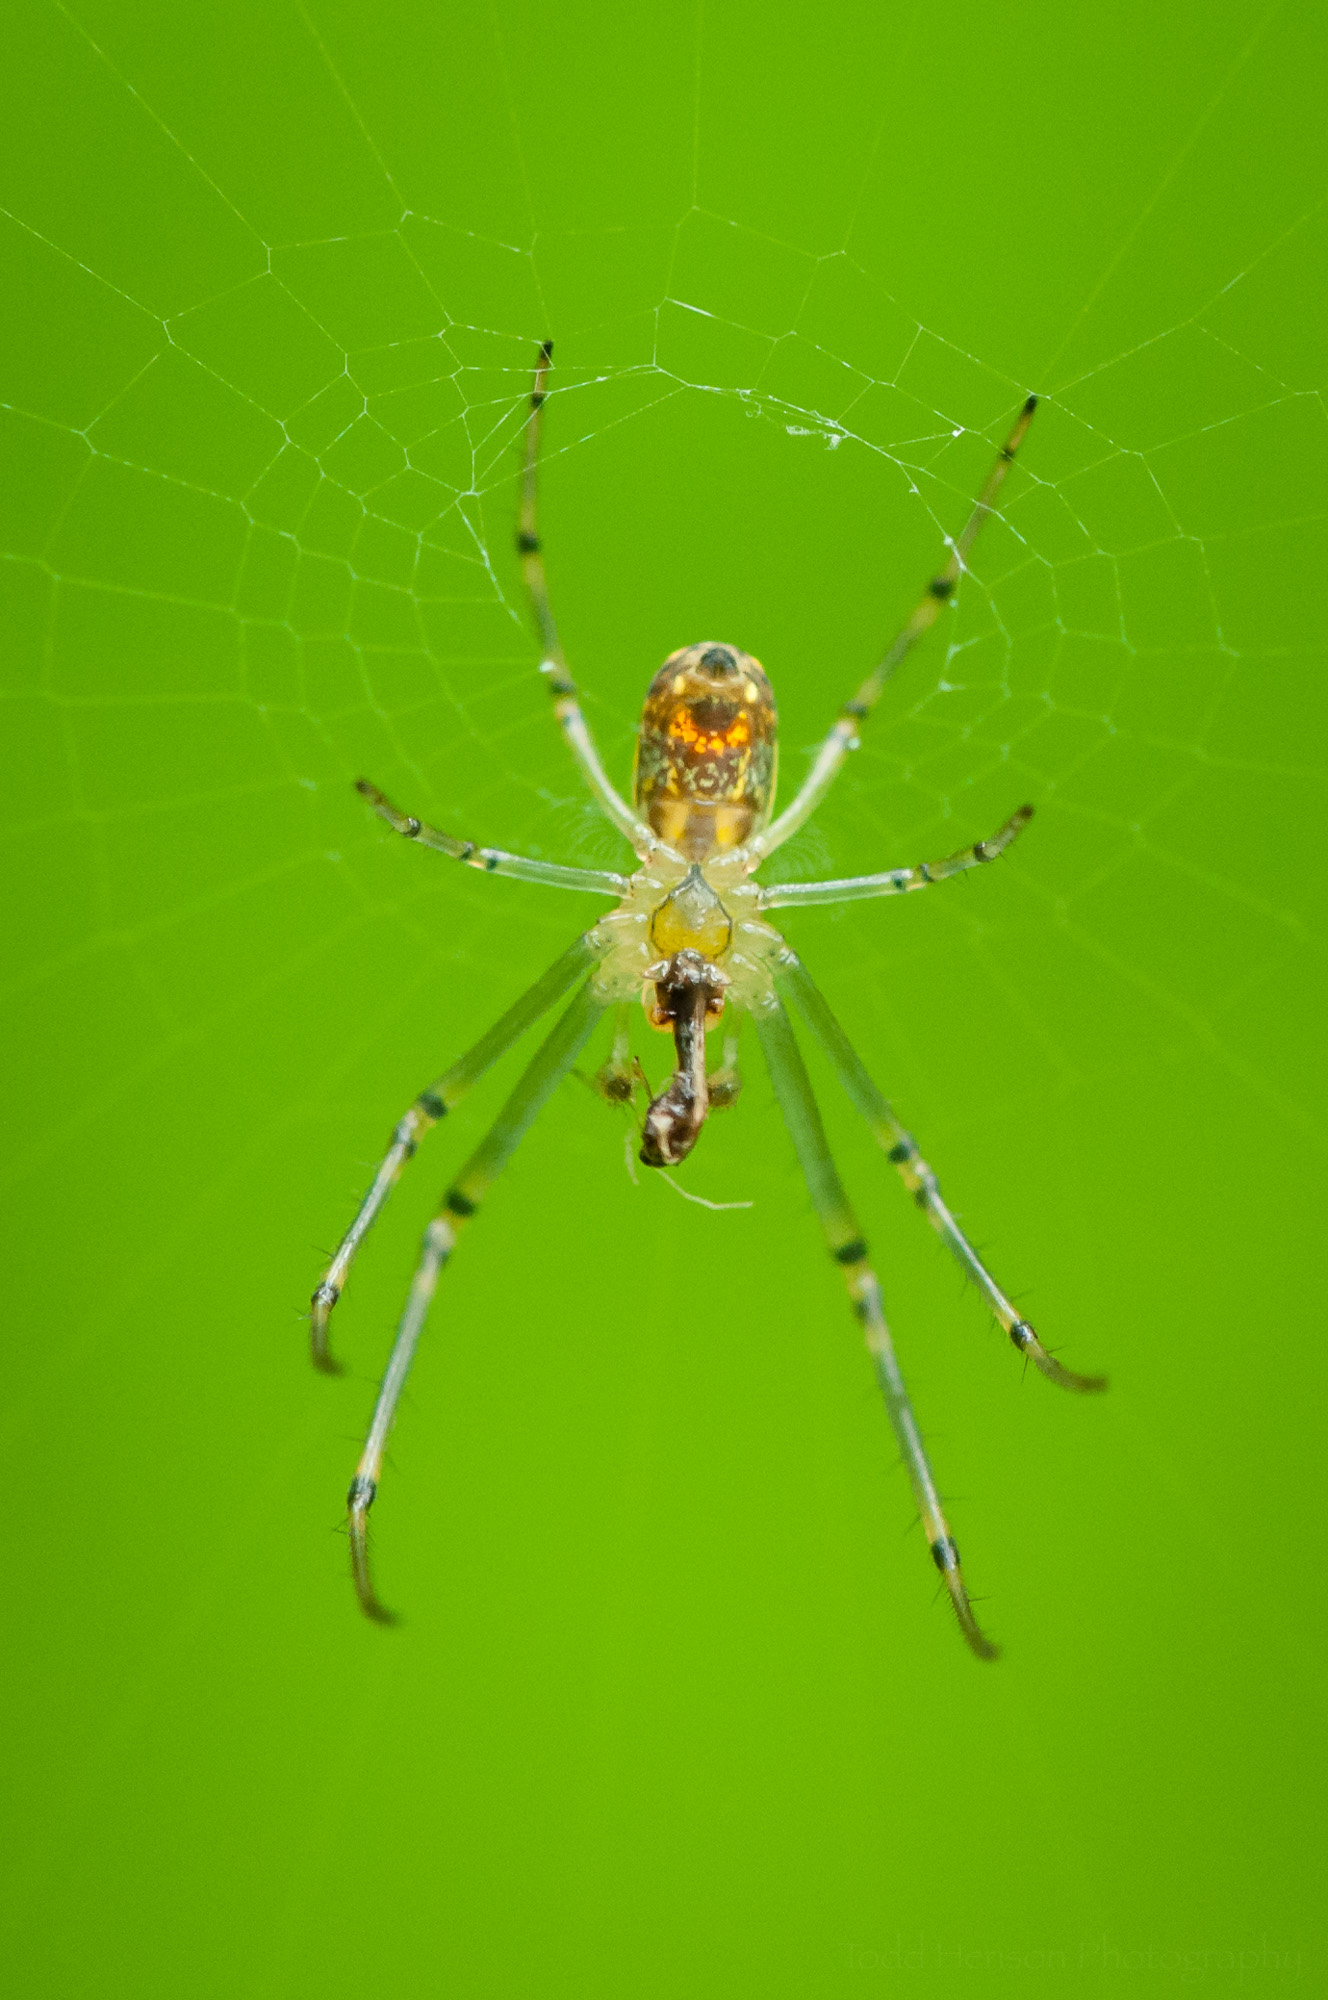 Another image of an Orchard Spider with prey.